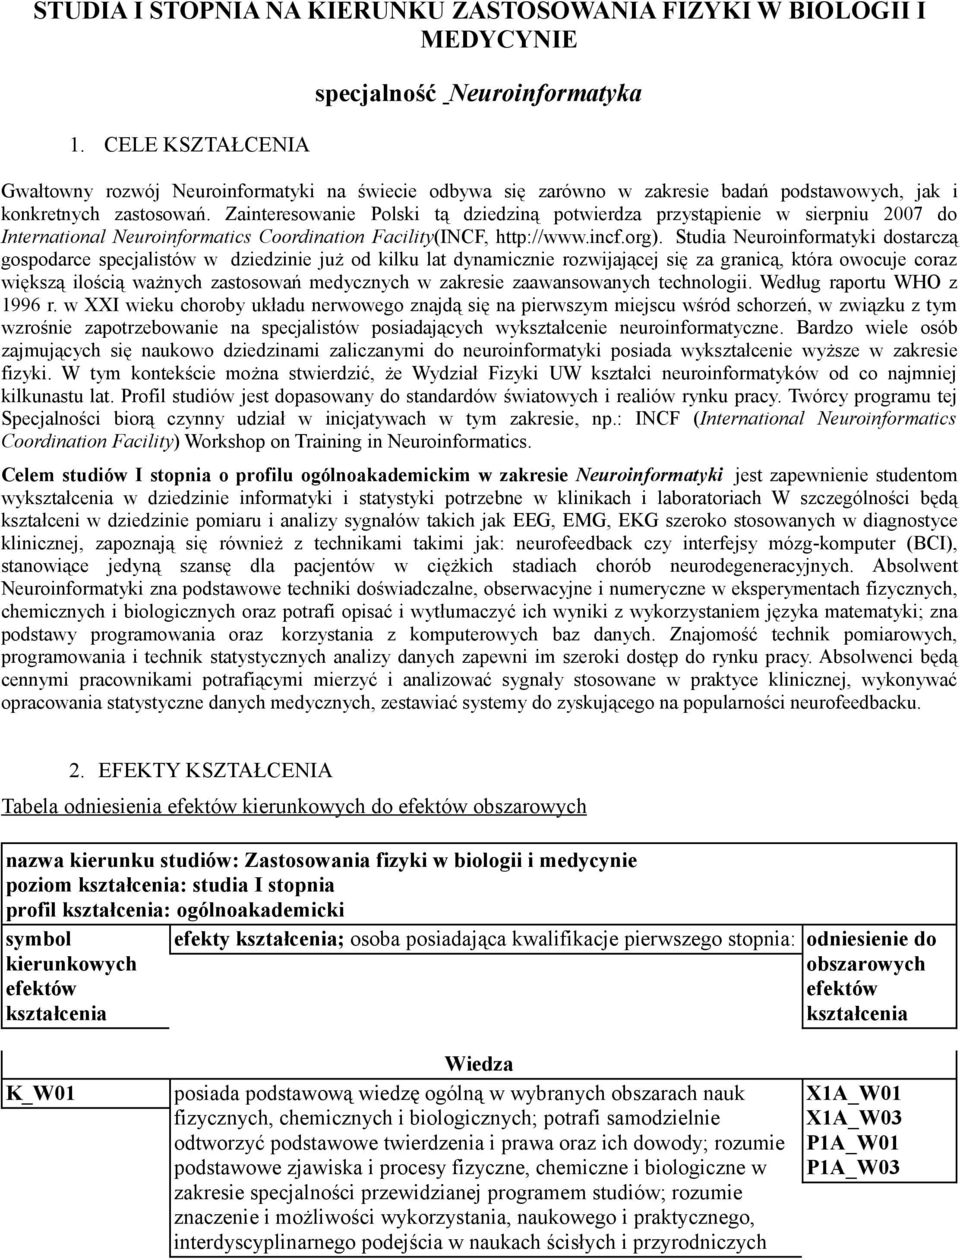 Zainteresowanie Polski tą dziedziną potwierdza przystąpienie w sierpniu 2007 do International Neuroinformatics Coordination Facility(INCF, http://www.incf.org).